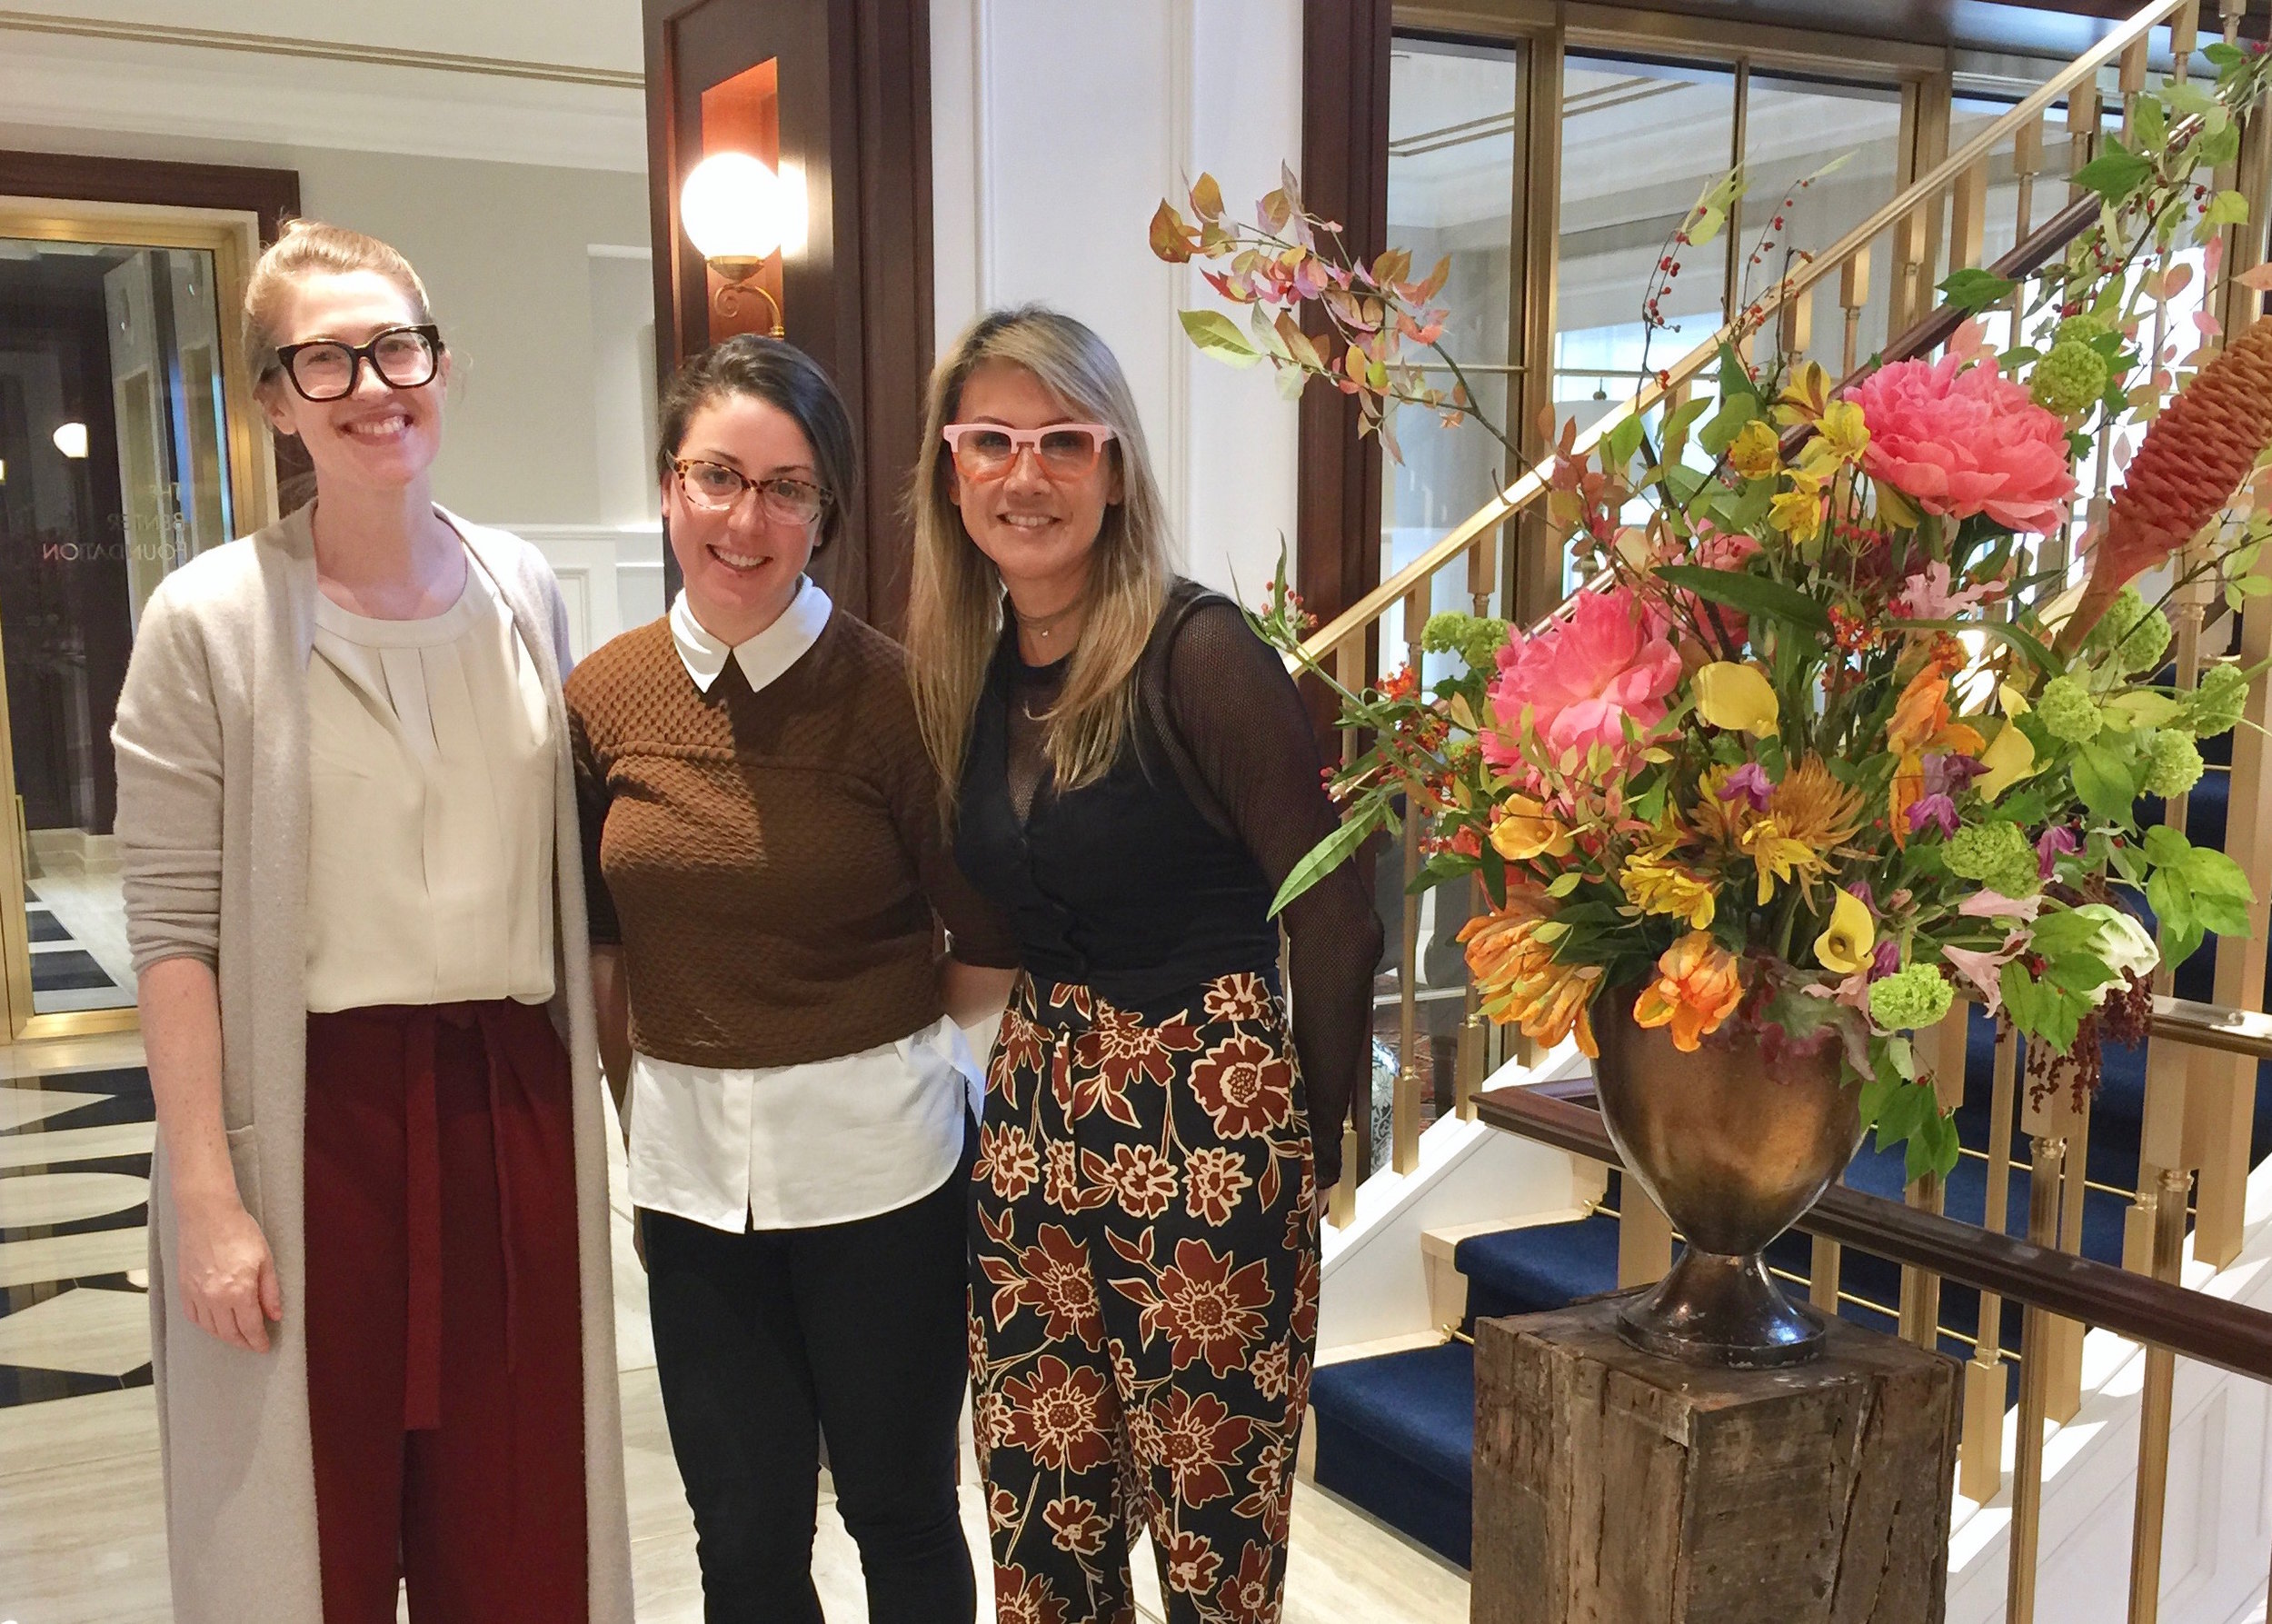 The CDCP Team: Casey Droege, Leah Mackin, and Johanna Lasner, with special guest team member, a lovely floral arrangement!